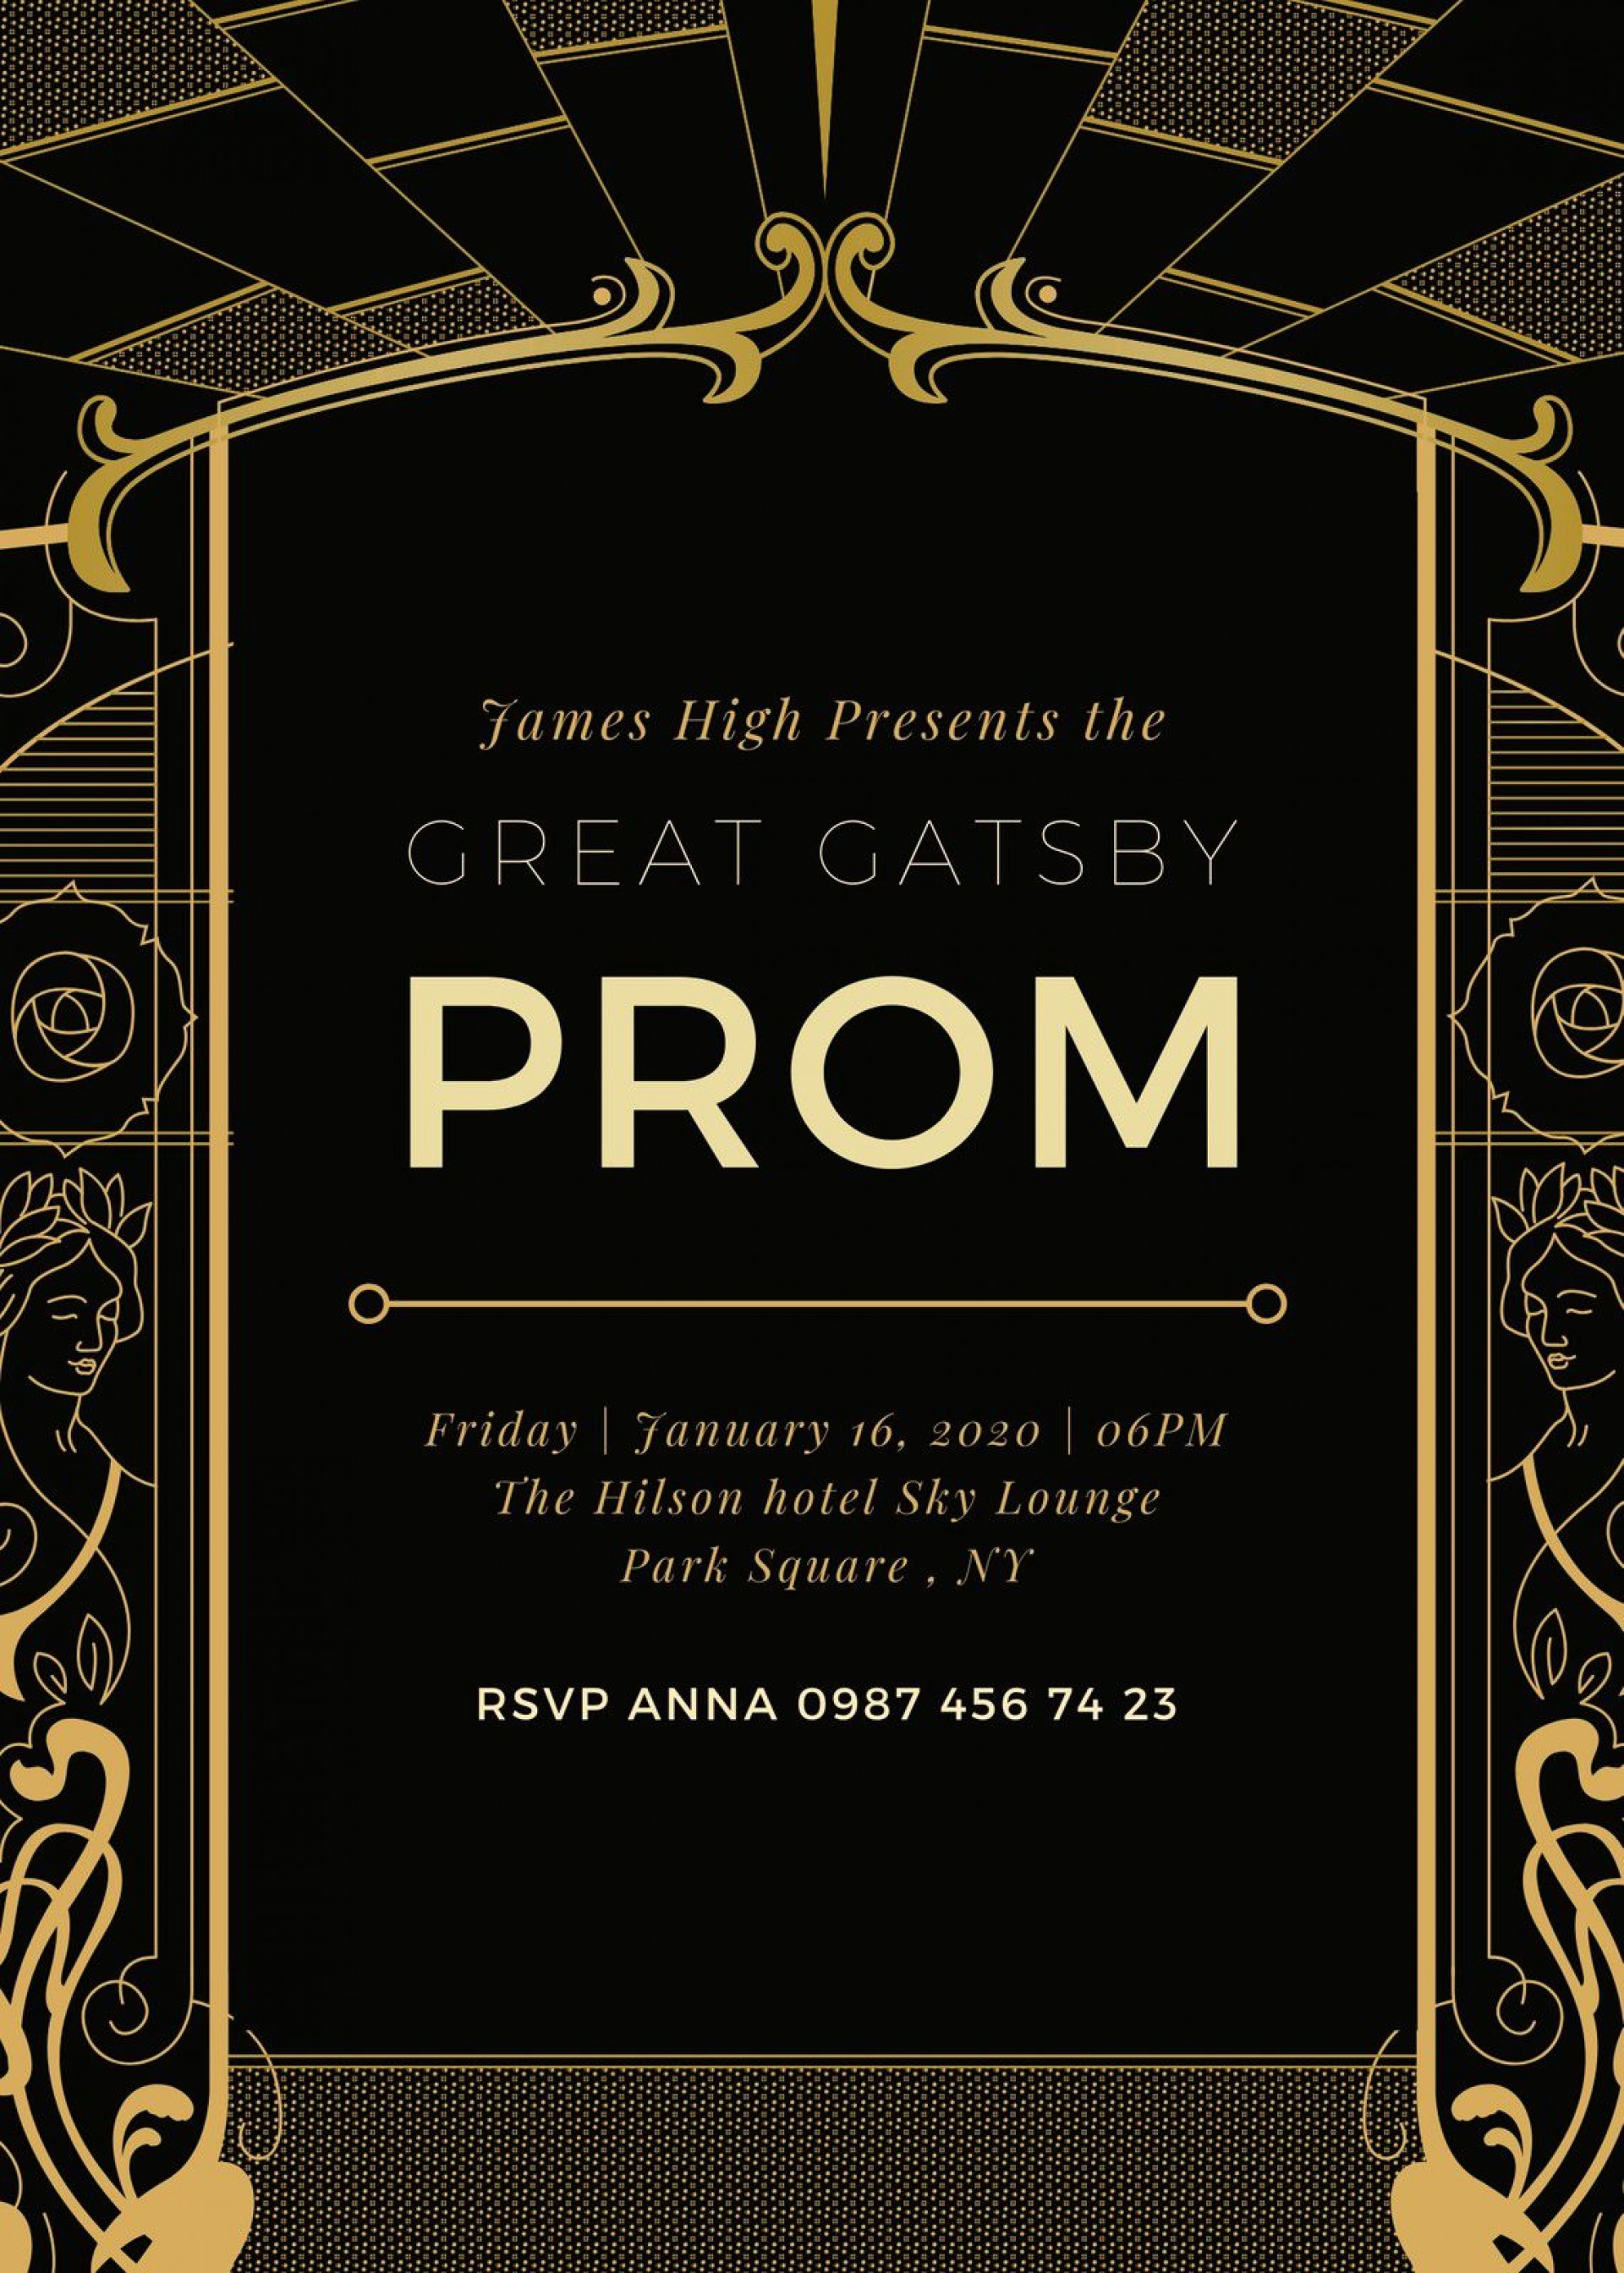 005 Fascinating Great Gatsby Invitation Template Example  Templates Free Download Blank1920